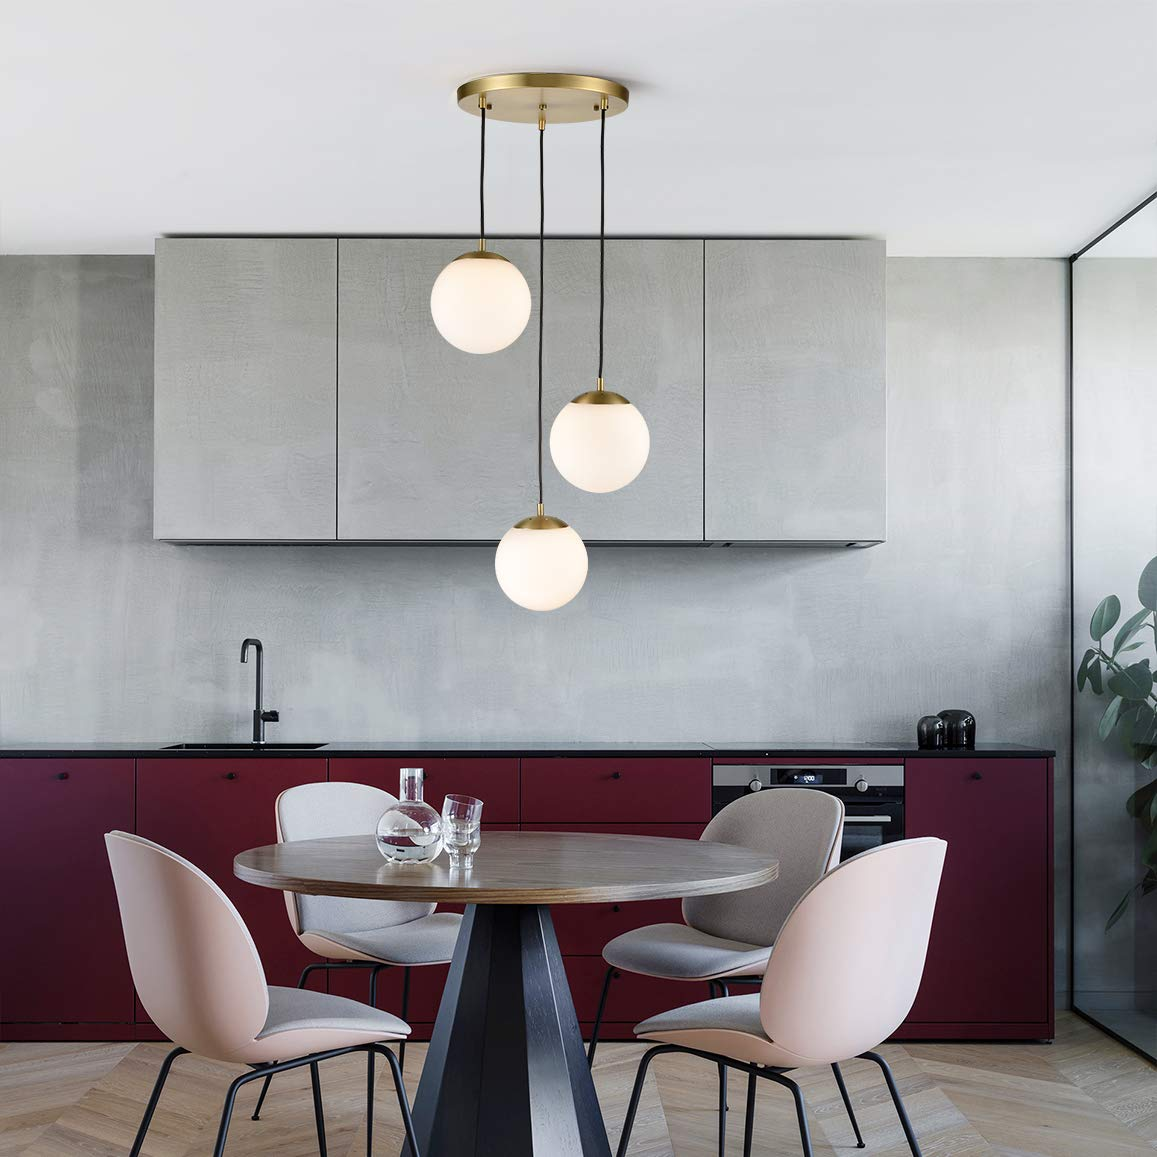 Light Society LS-C255-BB-WH Zeno 3-Light Pendant Lamp in Brushed Brass and White Glass Globes with Adjustable Length Cords Retro Mid Century Modern Style Chandelier